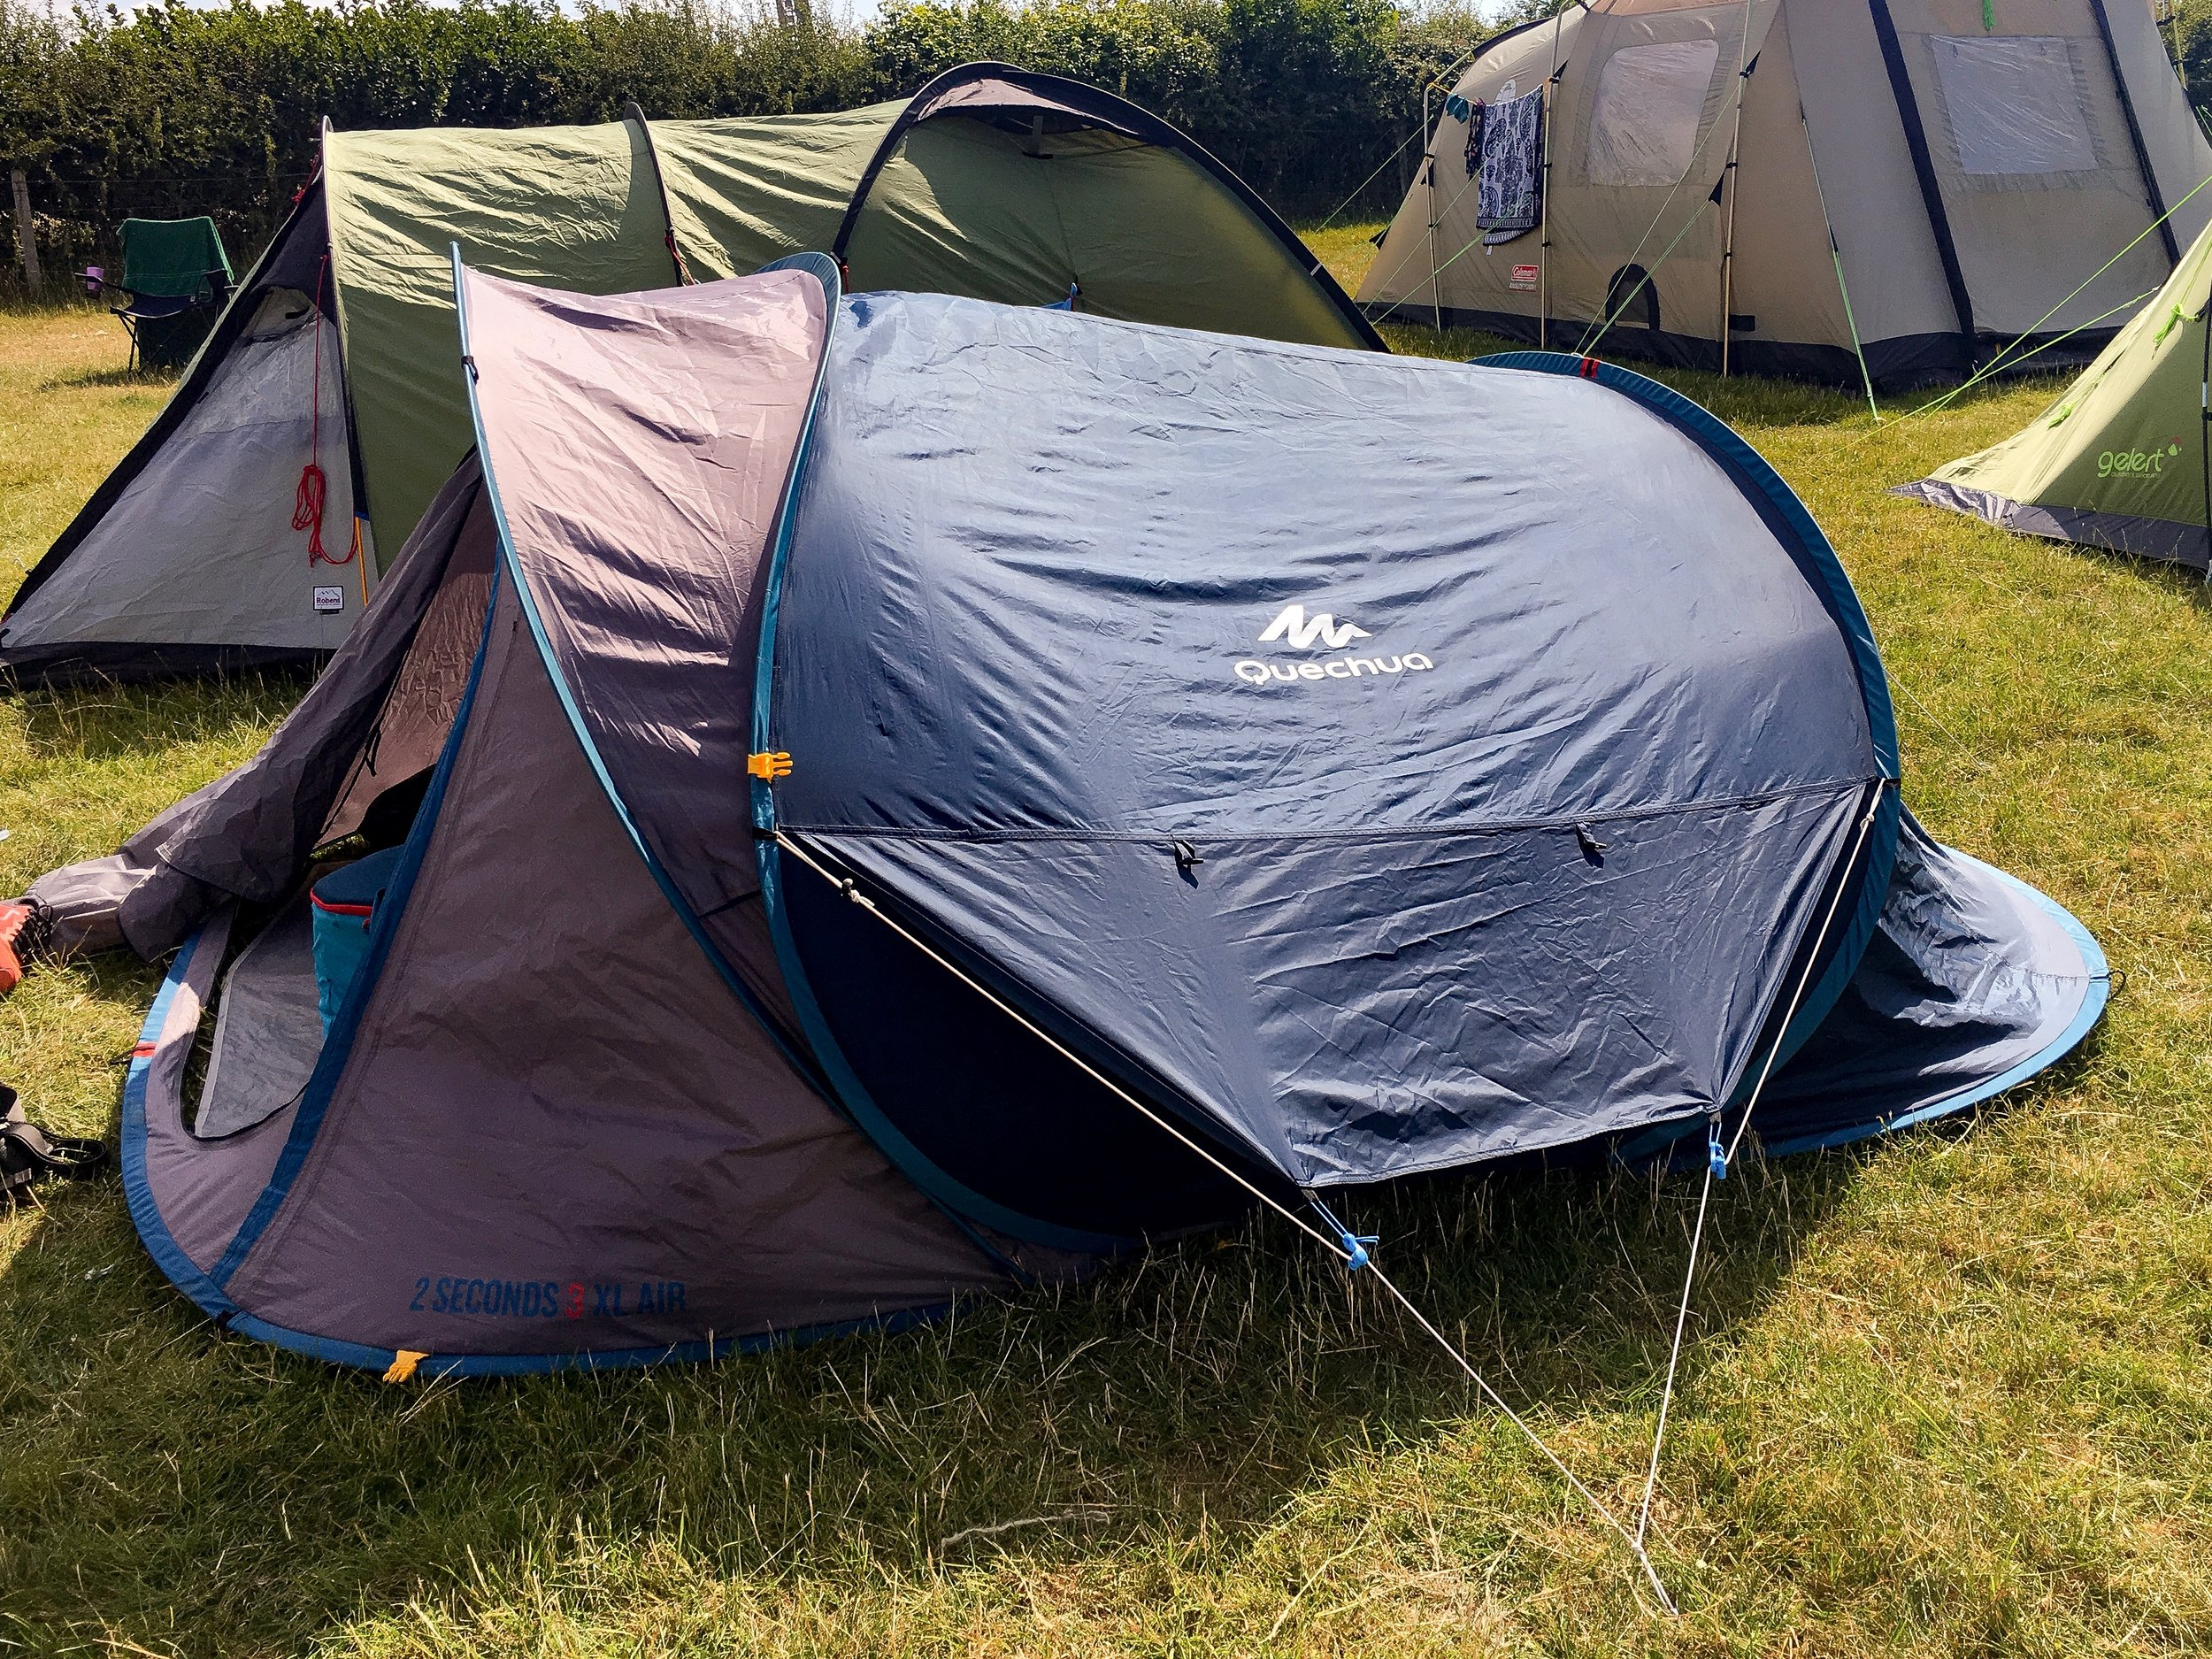 Festival Camping Gear with Quechua - A Pretty Place To Play